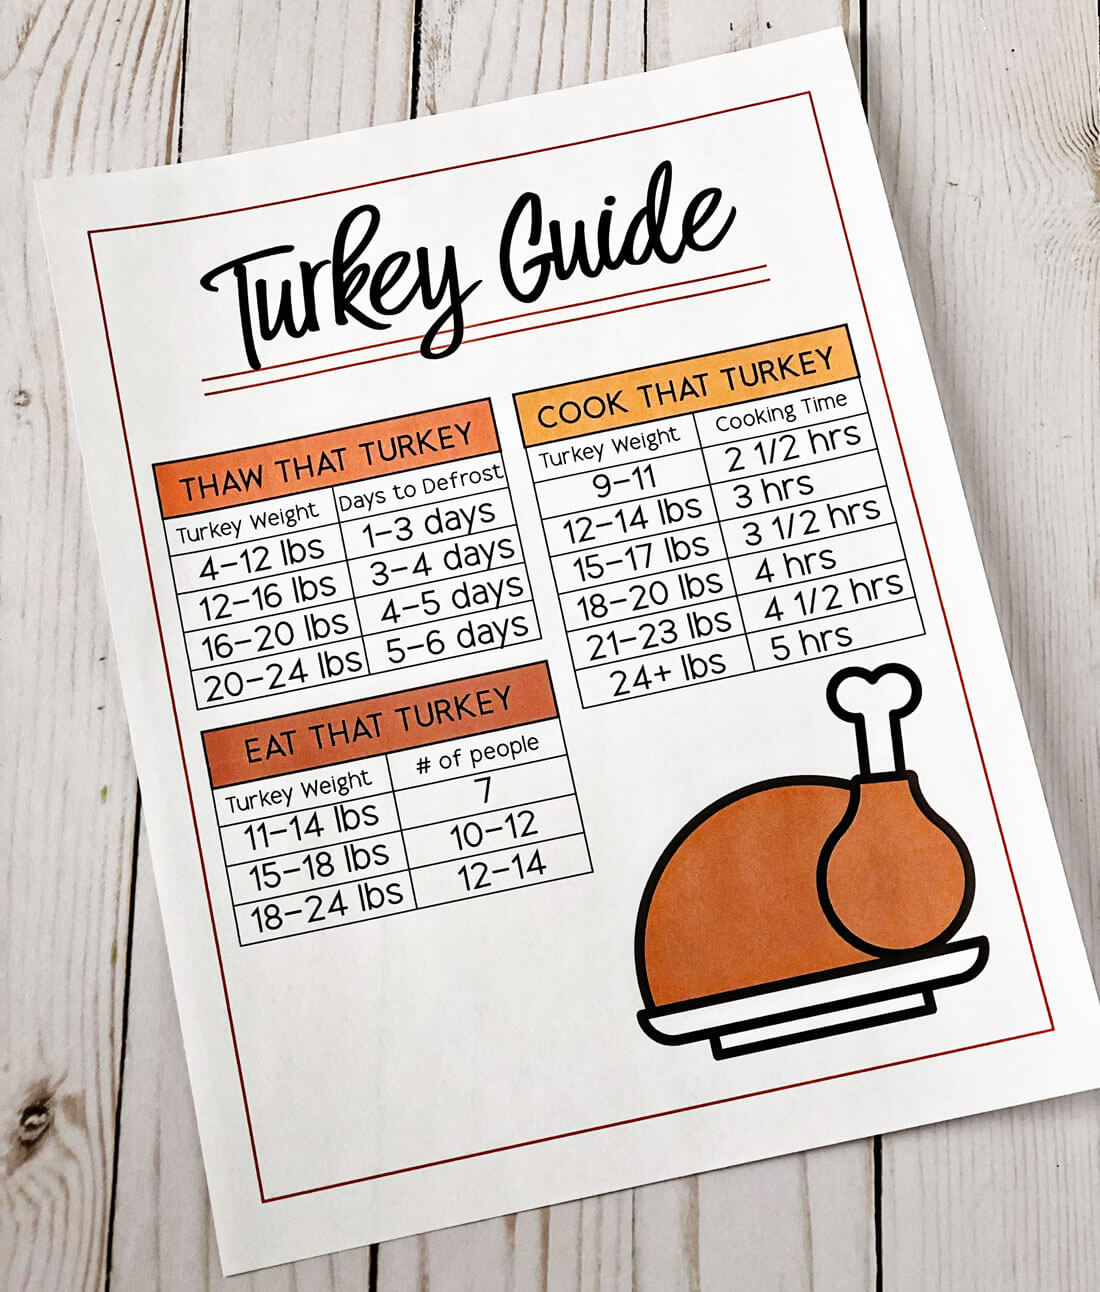 USDA announces recall of raw turkey products connected to salmonella outbreak